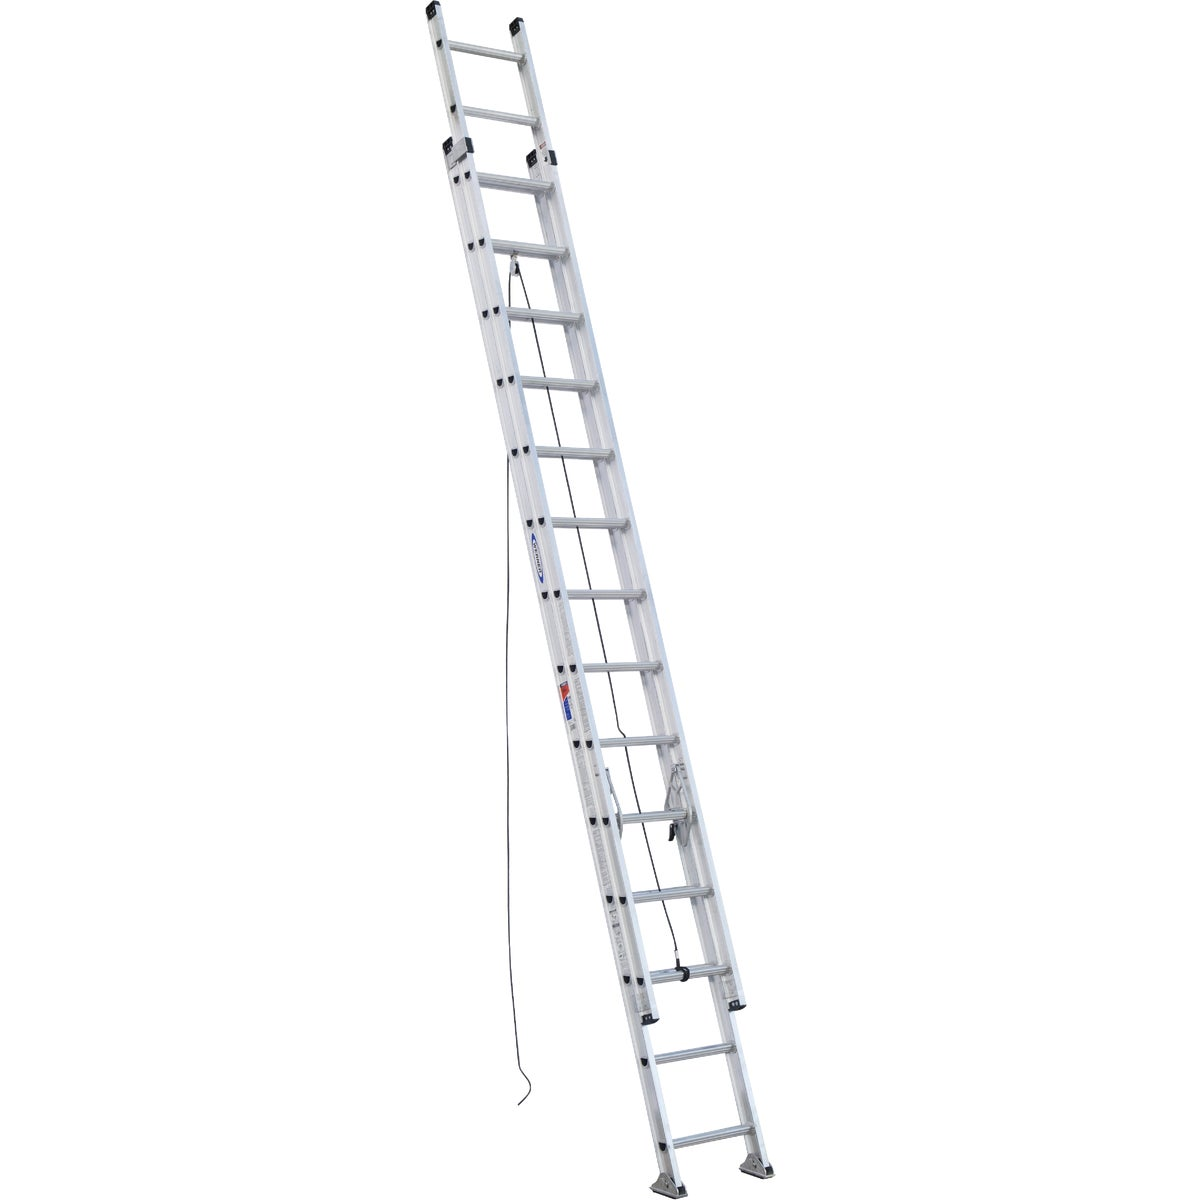 T-1A 28' ALUM EXT LADDER - D1528-2 by Werner Ladder